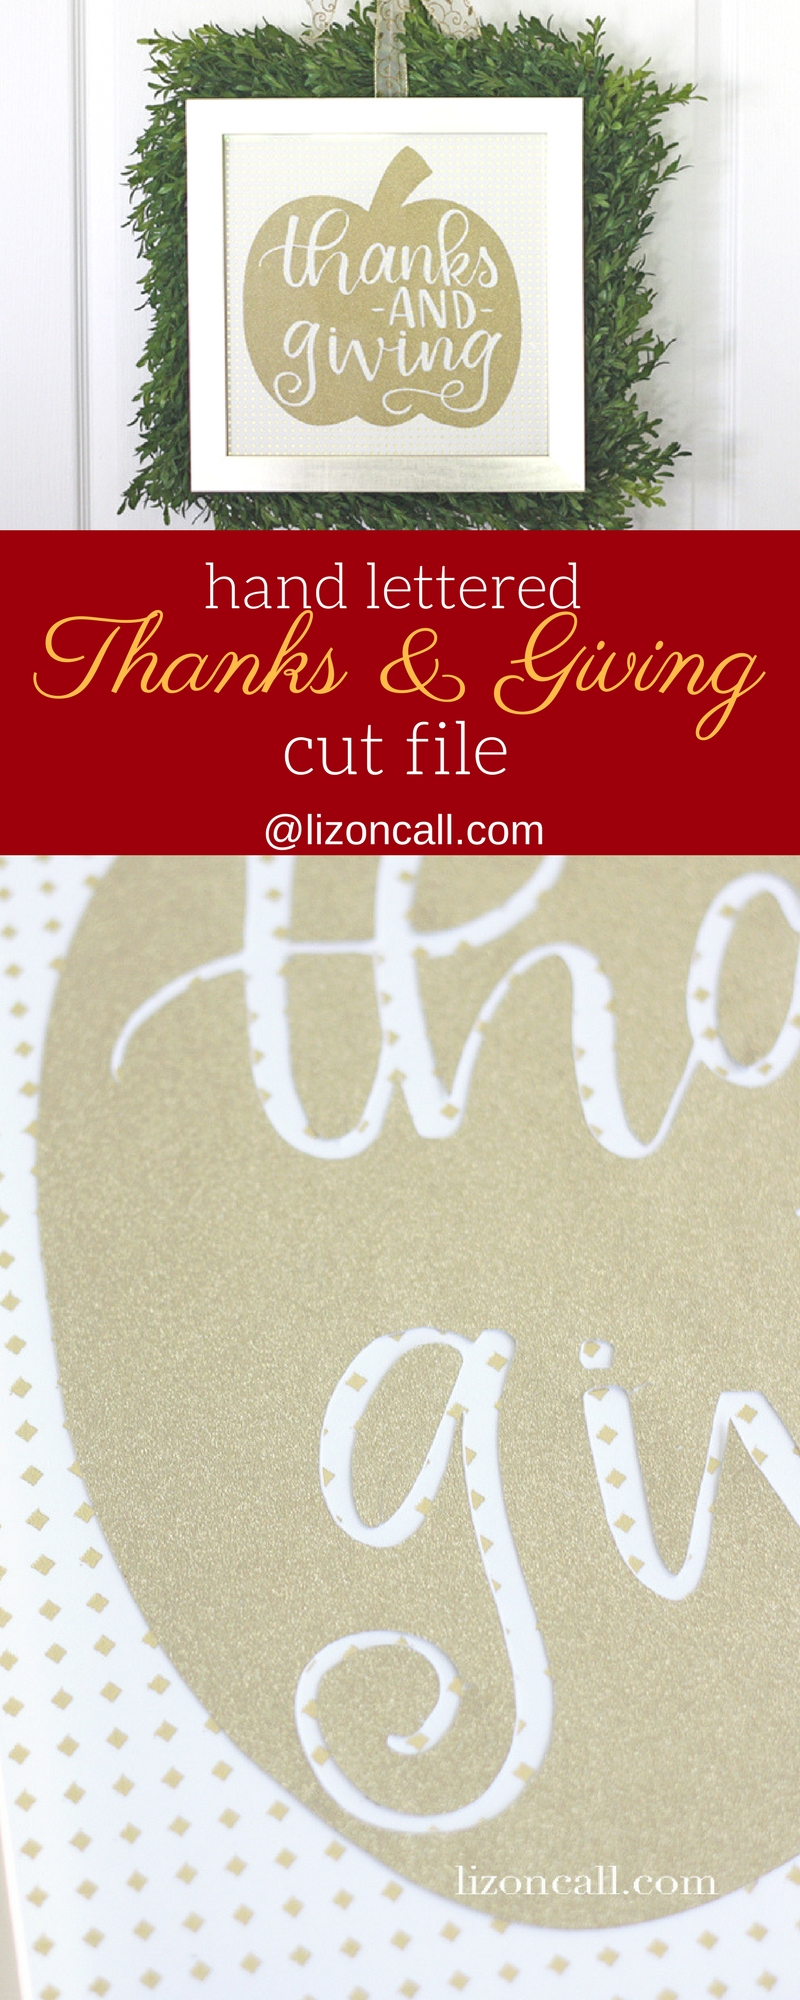 This hand lettered and hand drawn pumpkin cut file is great reminder to celebrate the fall season with both thanks and giving. #cutfile #svgfile #pumpkin #handlettered